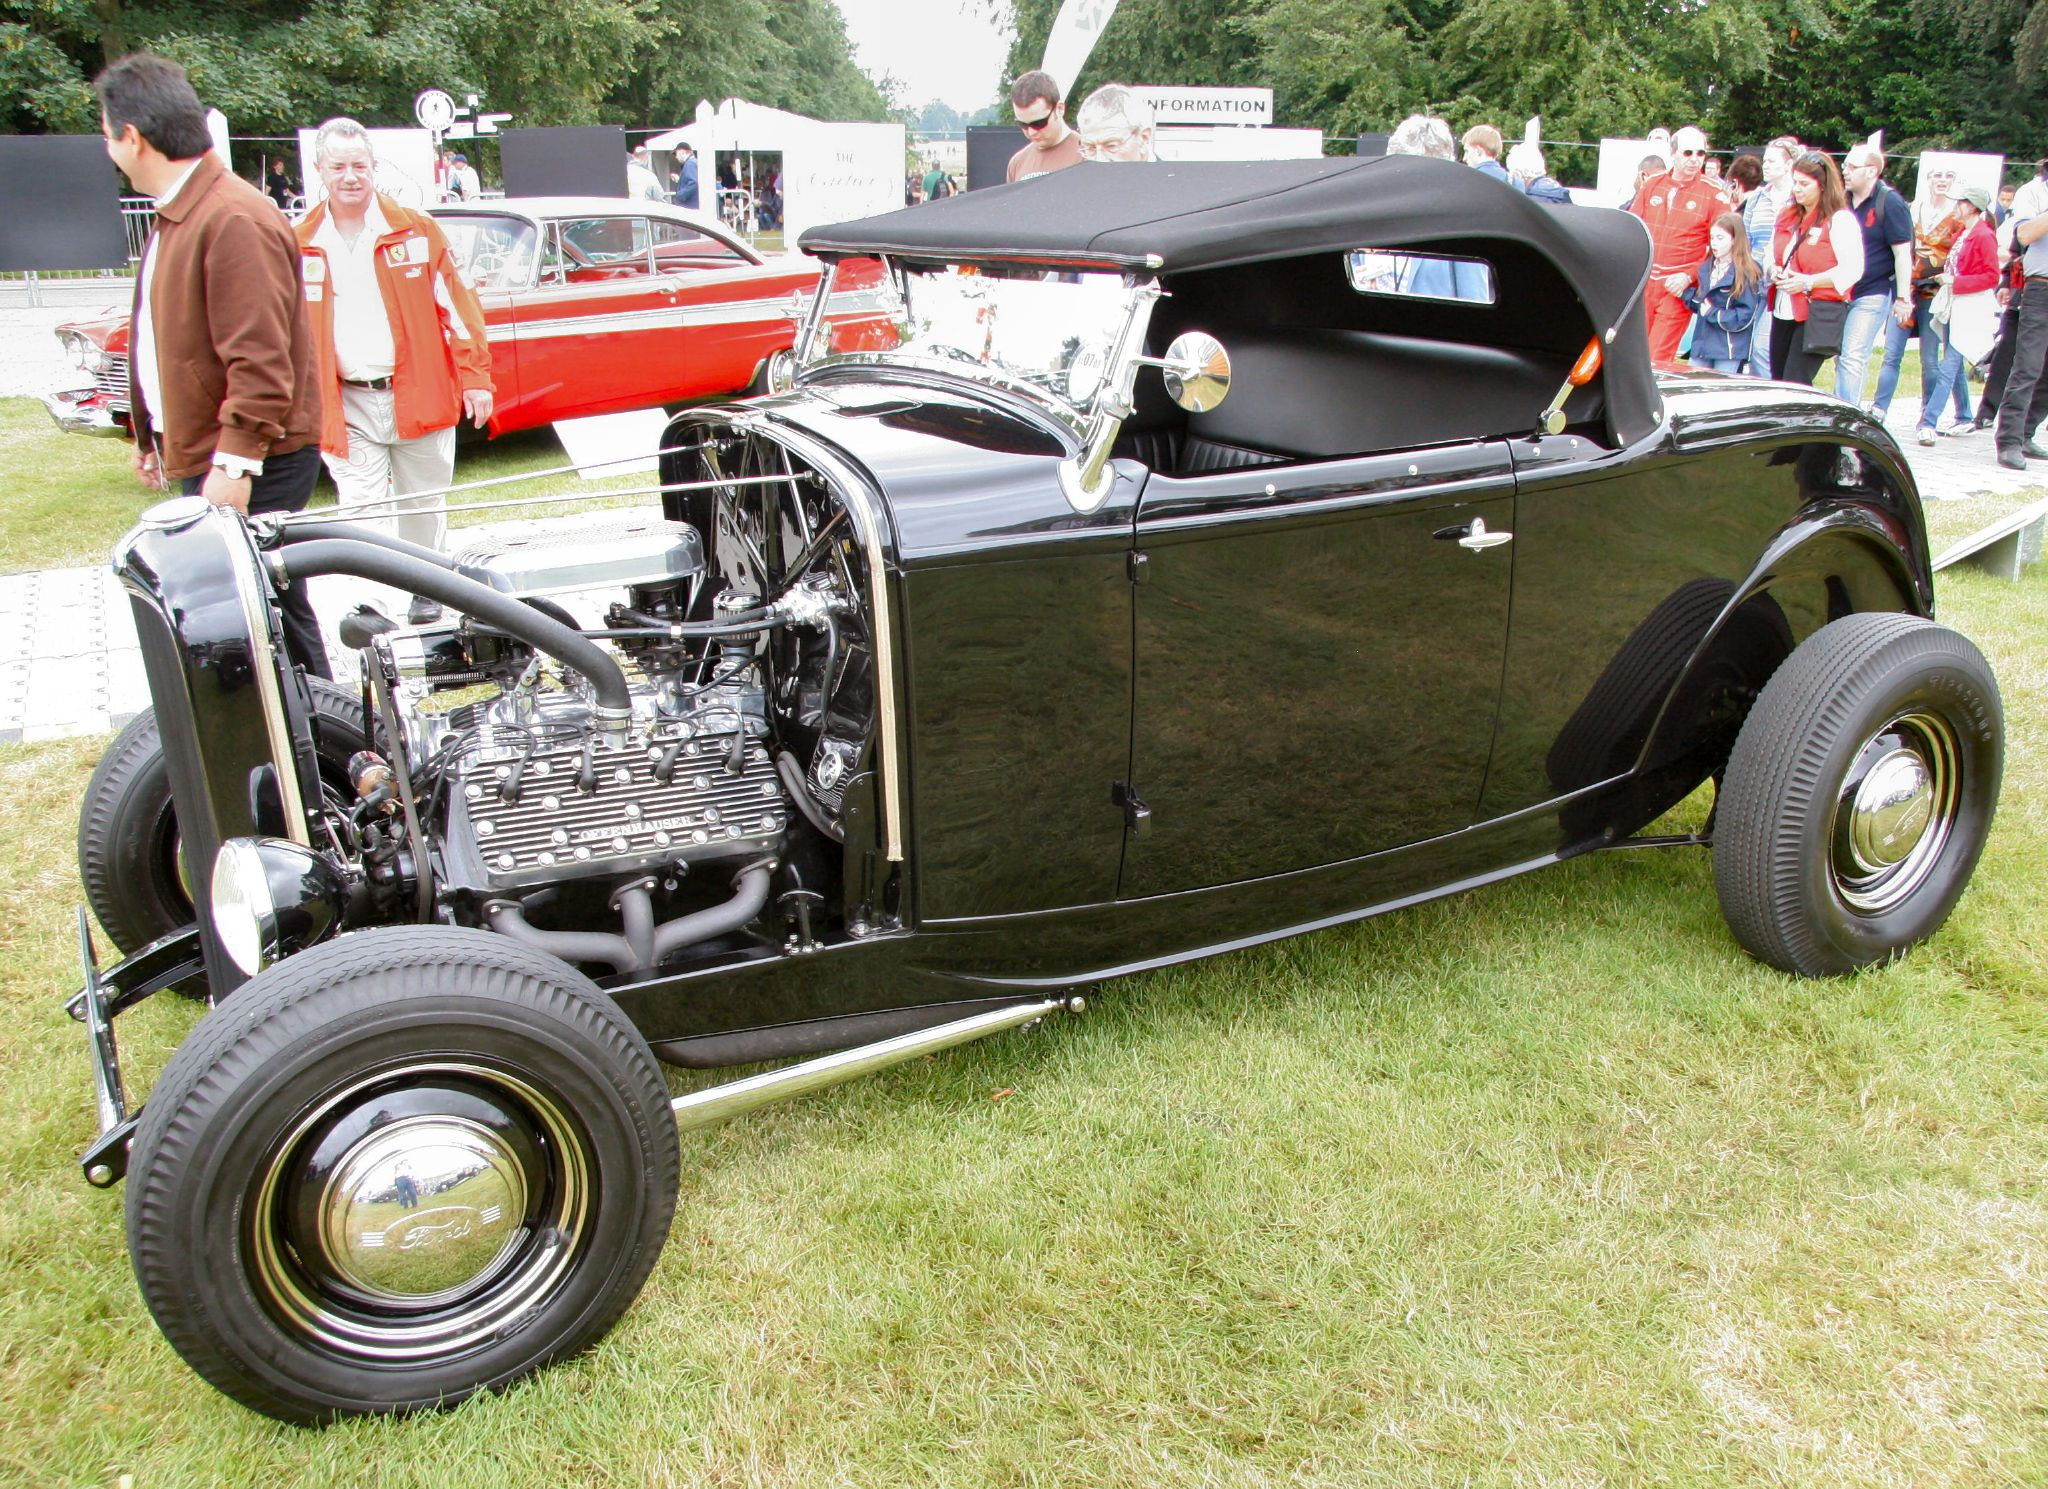 Fileford model b roadster 1932 flickr exfordy jpg